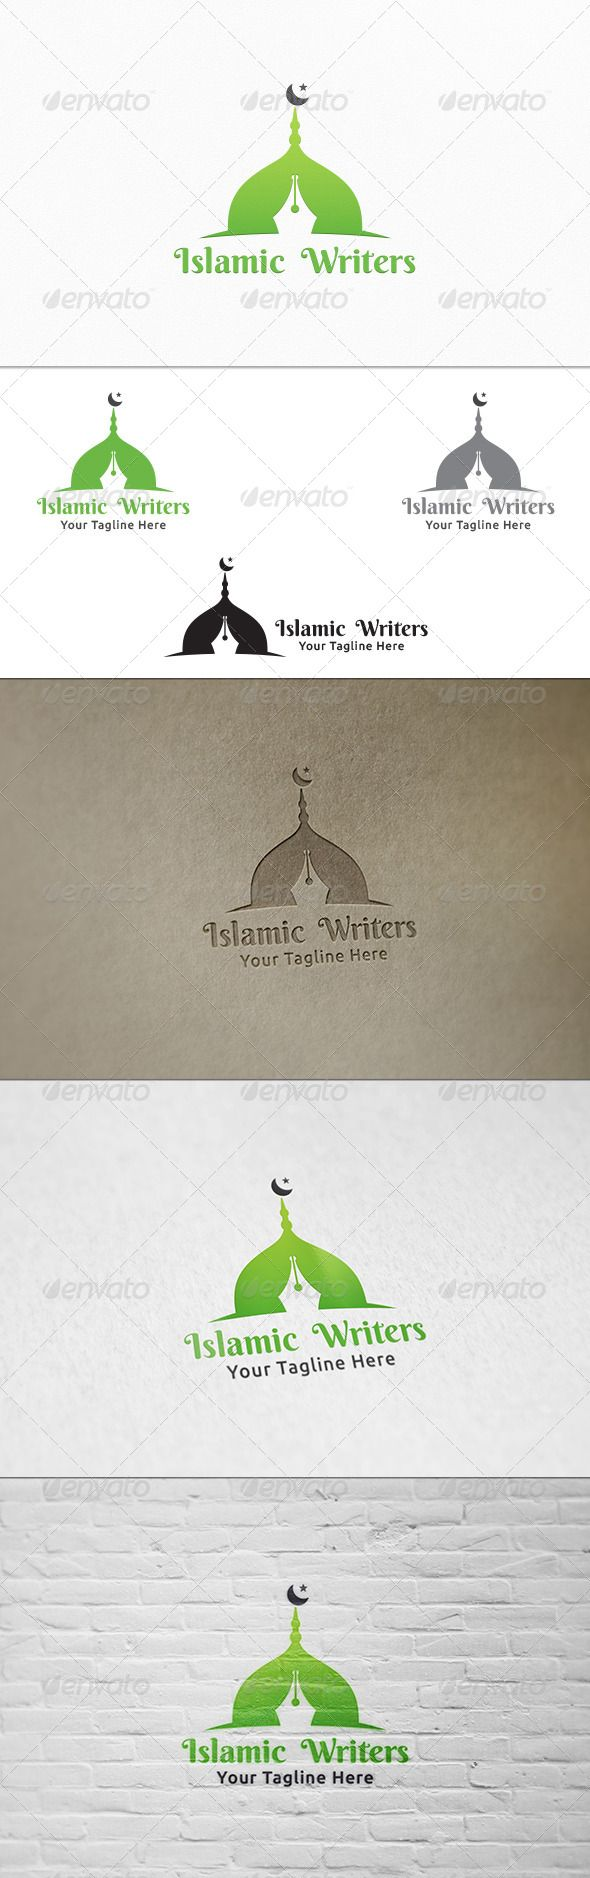 Islamic Writers  Logo Template — Vector EPS #muslim #mosque • Available here → https://graphicriver.net/item/islamic-writers-logo-template/8319013?ref=pxcr